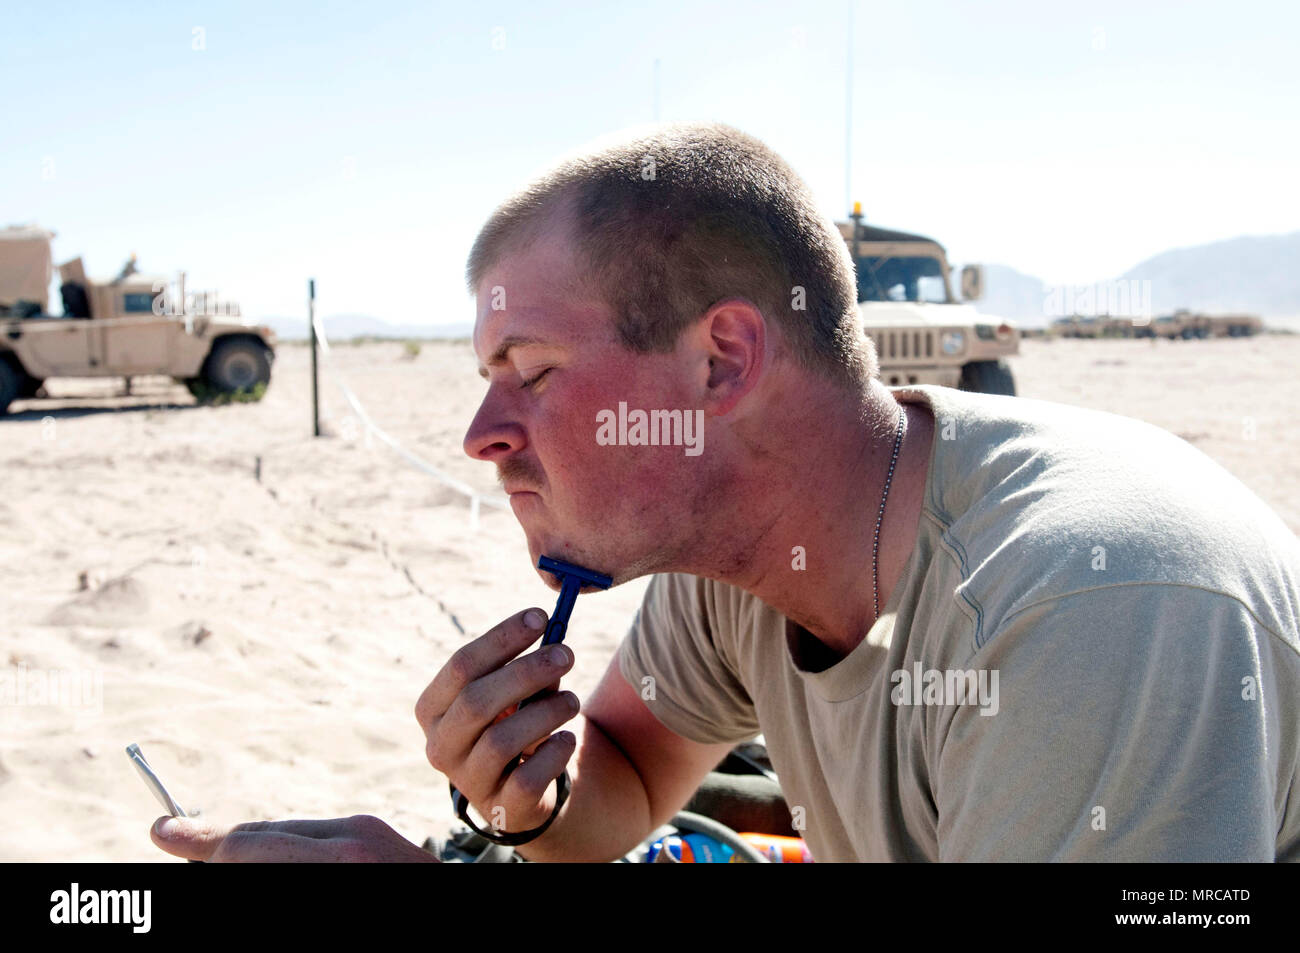 Spc. John Gore with 2d Battalion, 114th Field Artillery Regiment, shaves in the Mojave Desert using bottled water, pocket sized mirror, and a razor to conform to Army regulations at the National Training Center June 5, 2017. (Mississippi National Guard photo by Sgt. Edward Lee, 102d Public Affairs Detachment) - Stock Image